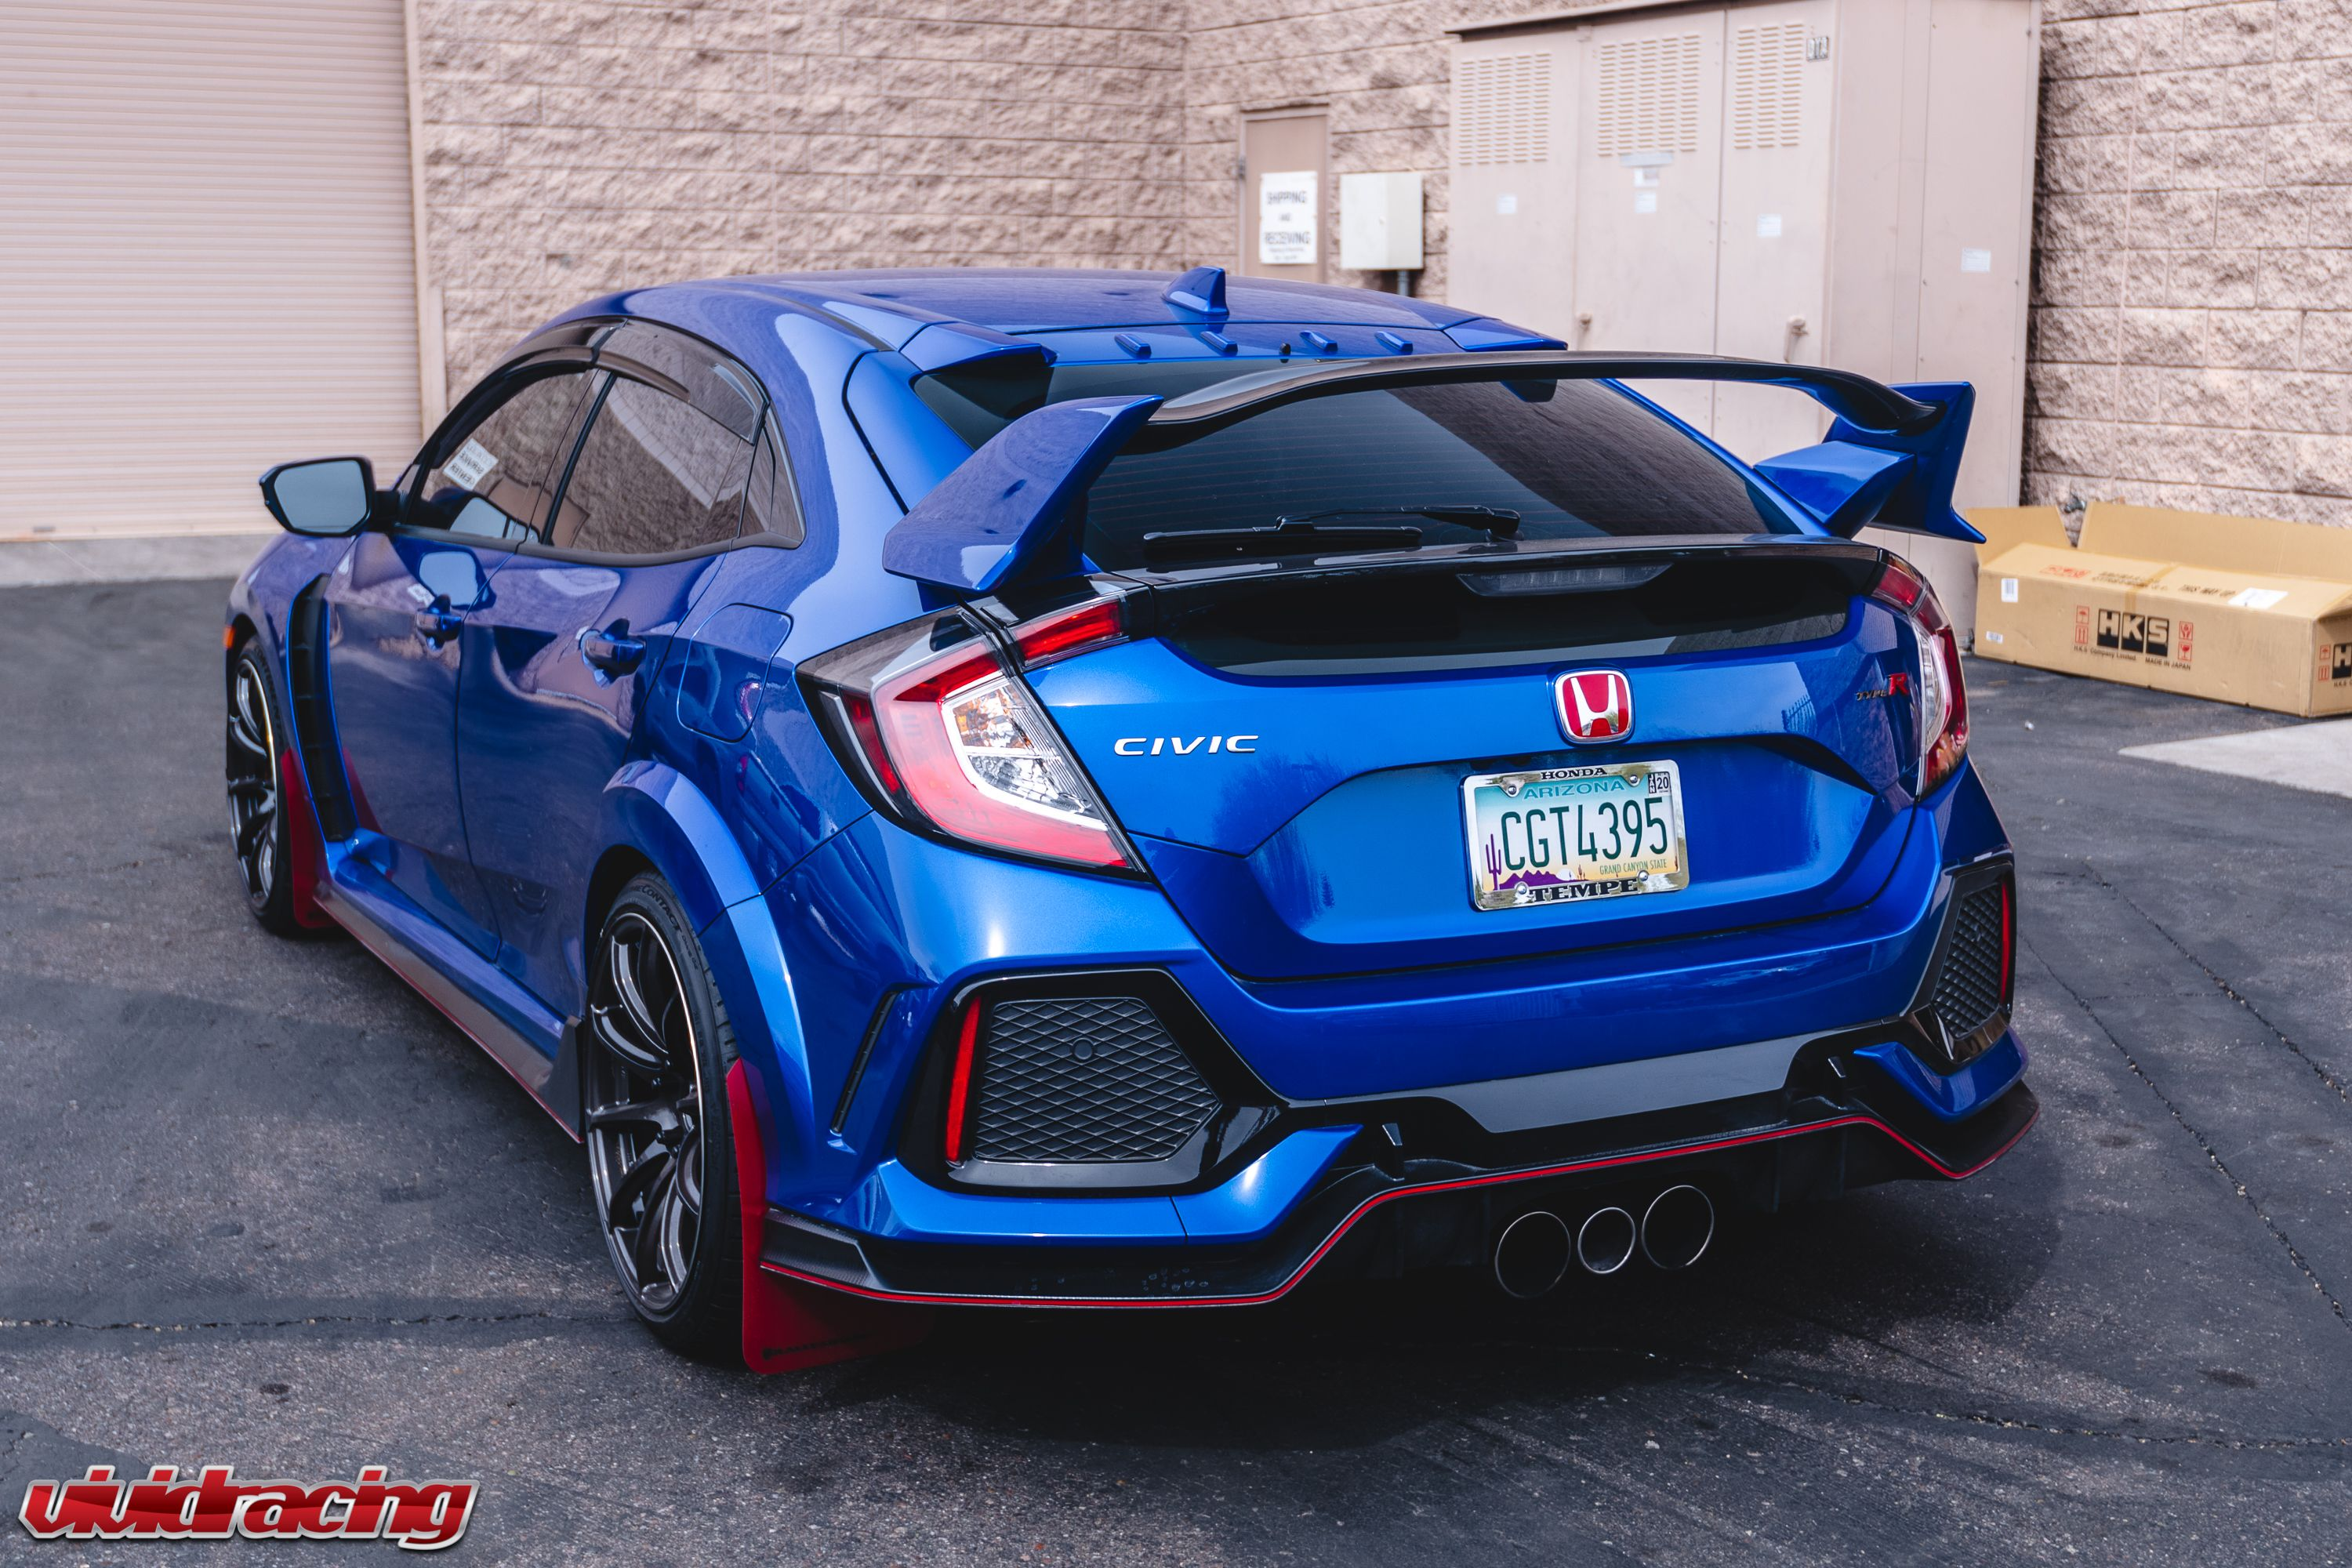 Client Fk8 Civic Type R On Gramlights 57trascend Gta Cars Online Cars Civic